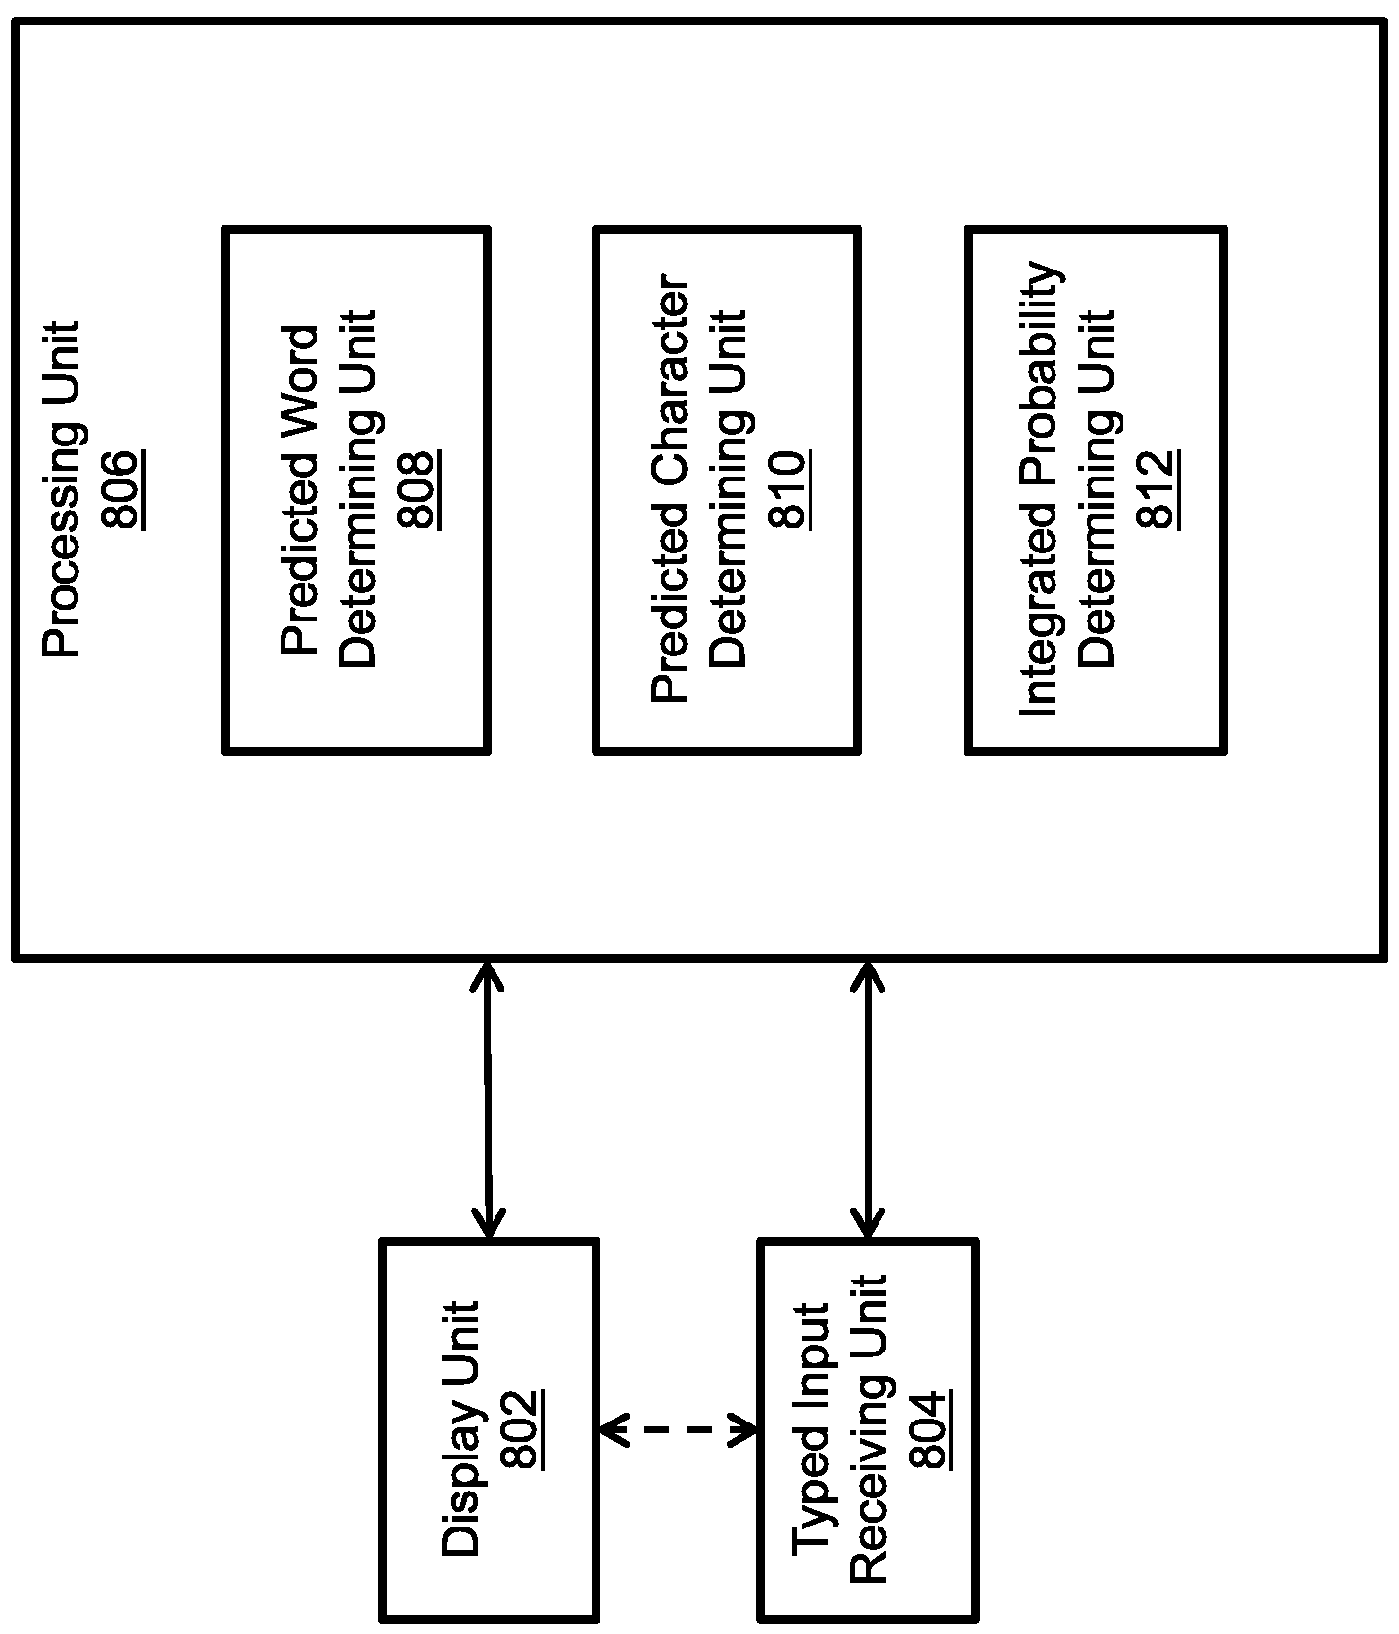 Wo2015183699a1 Predictive Messaging Method Google Patents Board Iphone 6 Besides Tv Circuit Diagram Also Hfc Work On Figure Imgf000114 0001